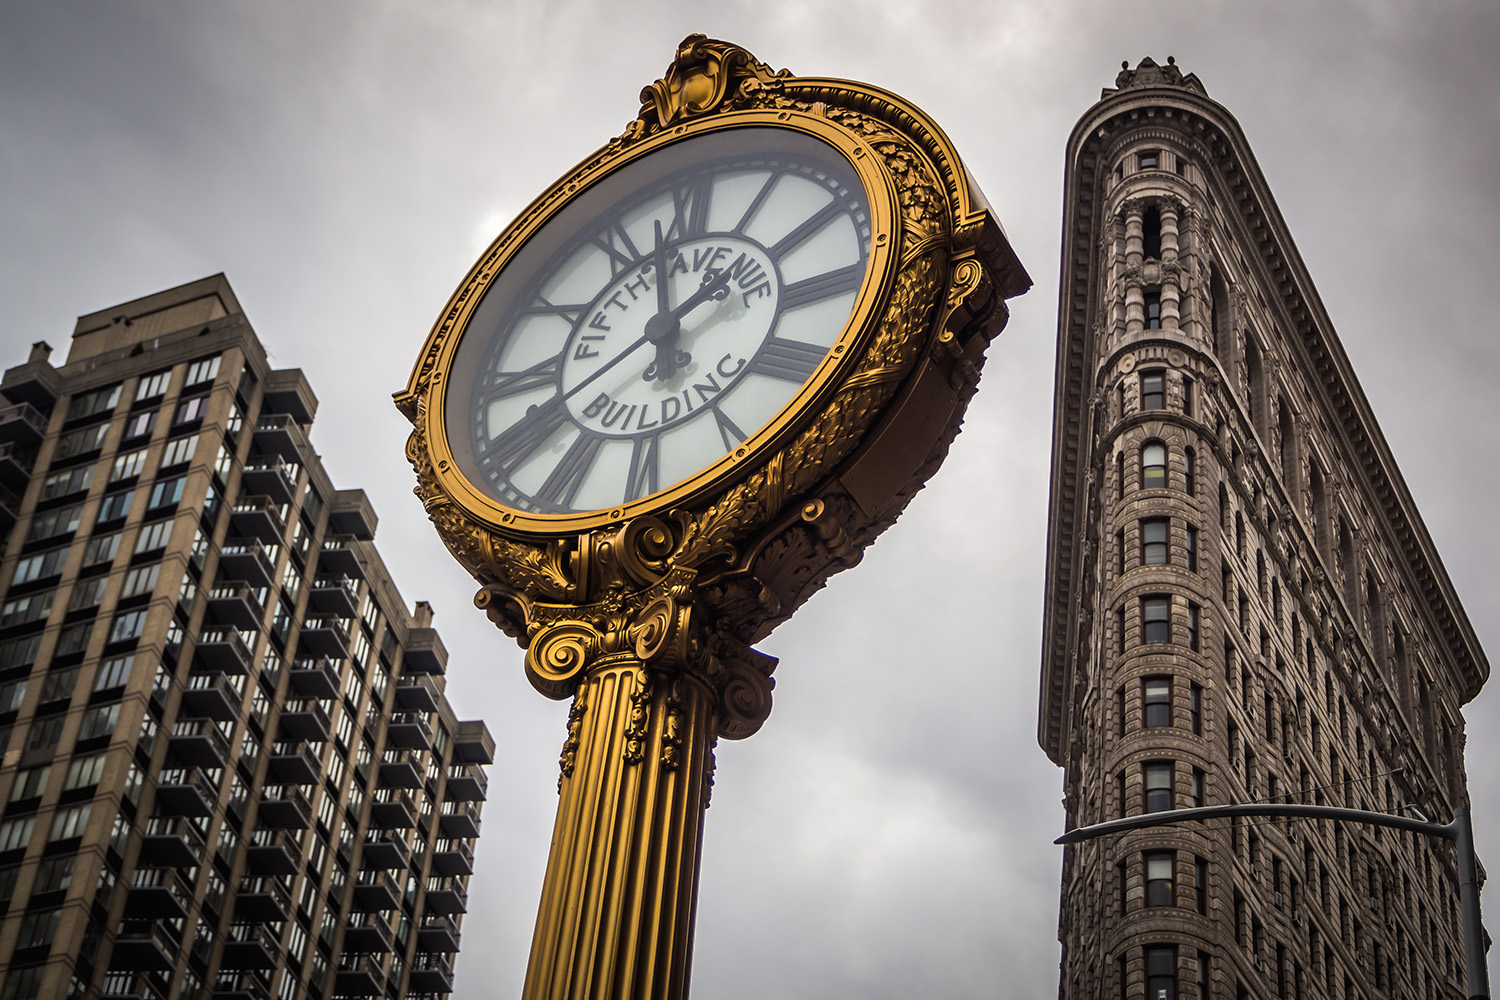 The clock of Flatiron buidling